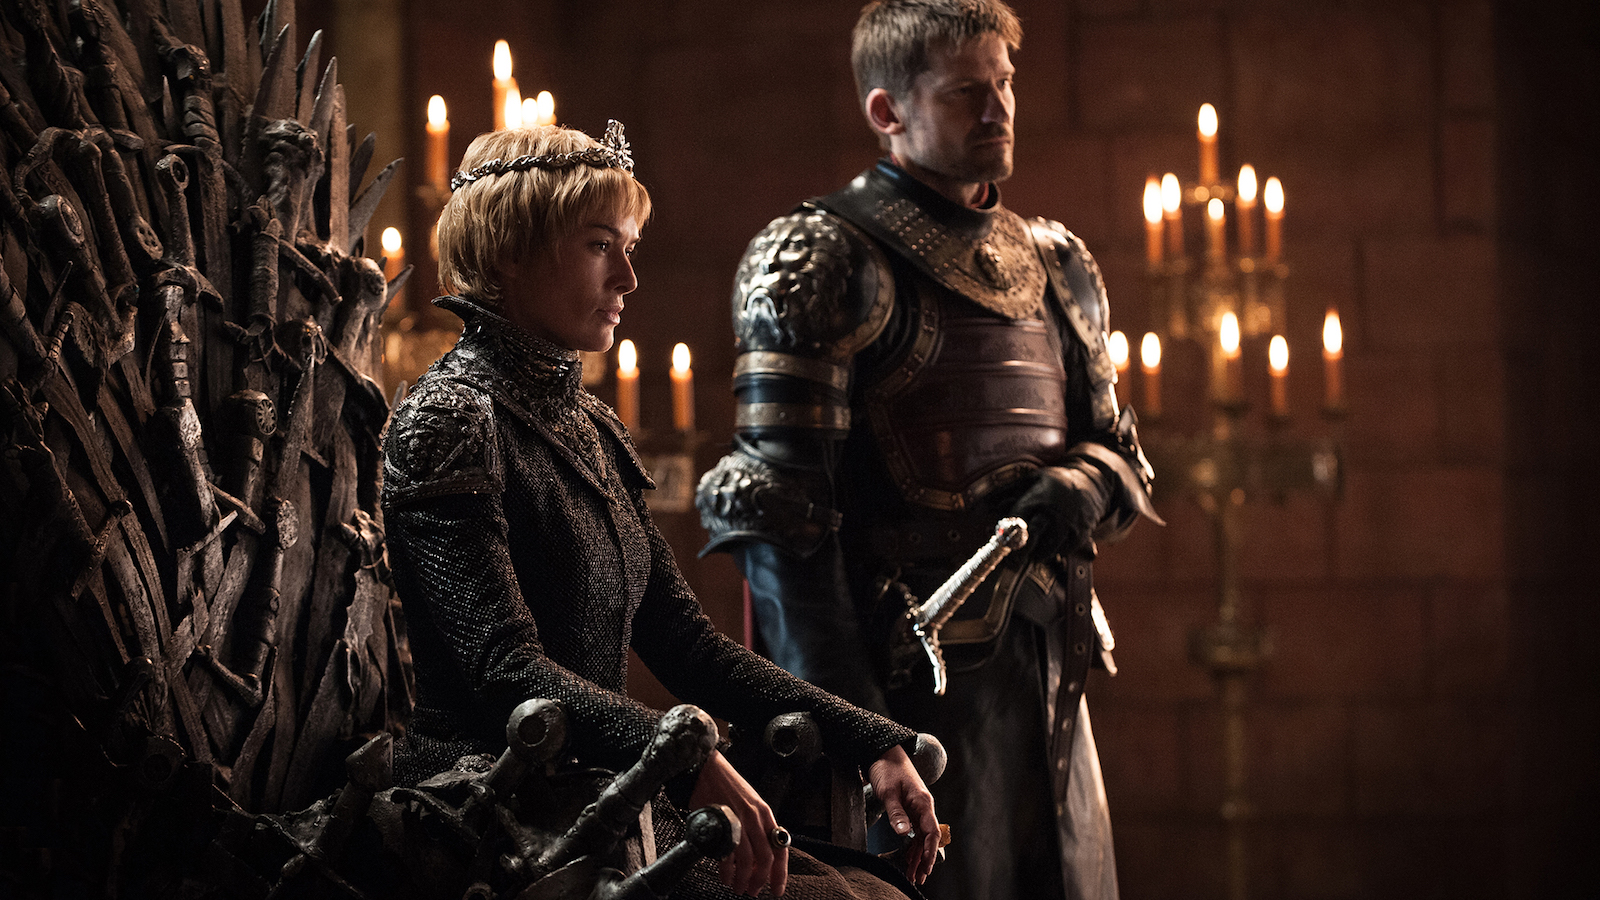 Lannisters from Game of Thrones